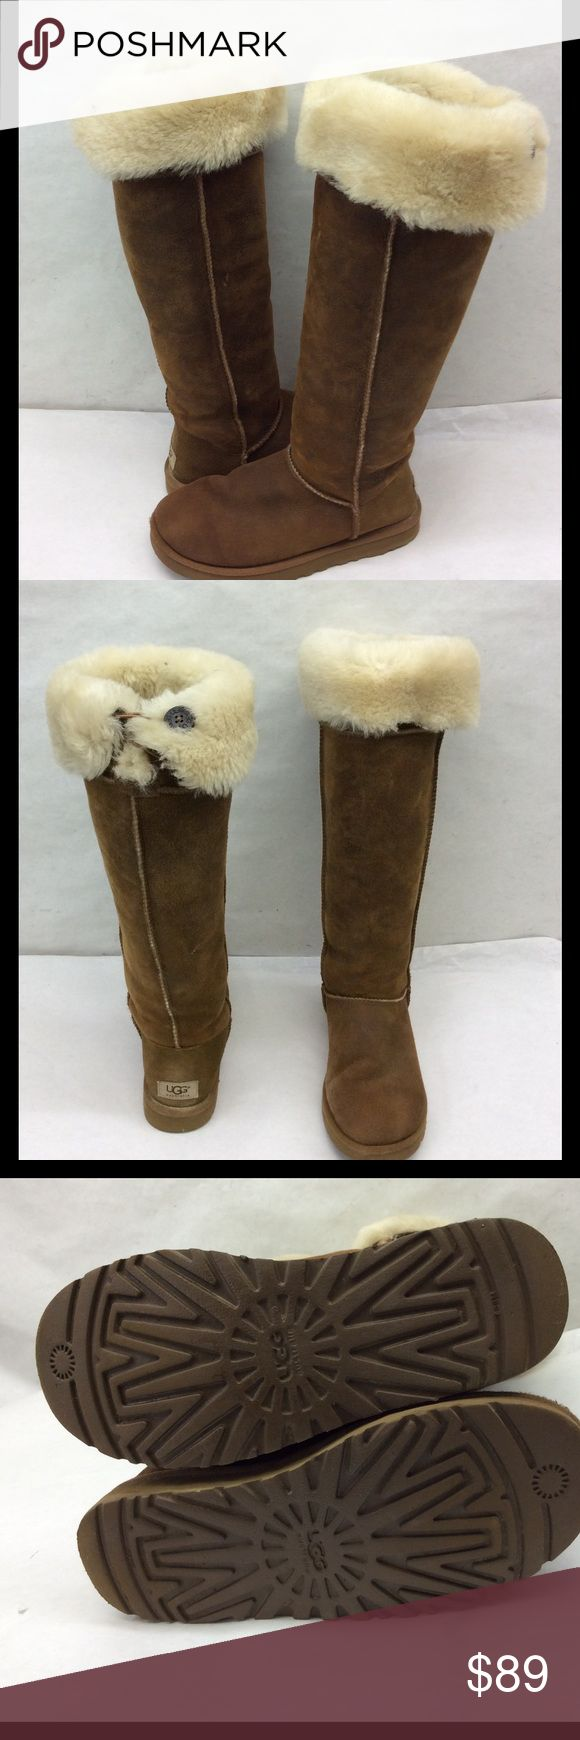 "Ugg Australia 3172 Shearling Suede Knee High Boots UGG Australia 3172 Boots. These boots have been worn a few times but are in good condition. Double bailey button at the cuff. Filly lined with shearling. Textured chestnut brown suede knee high authentic. Circumference 17"" shaft height 19""   Psku 79 UGG Shoes Over the Knee Boots"